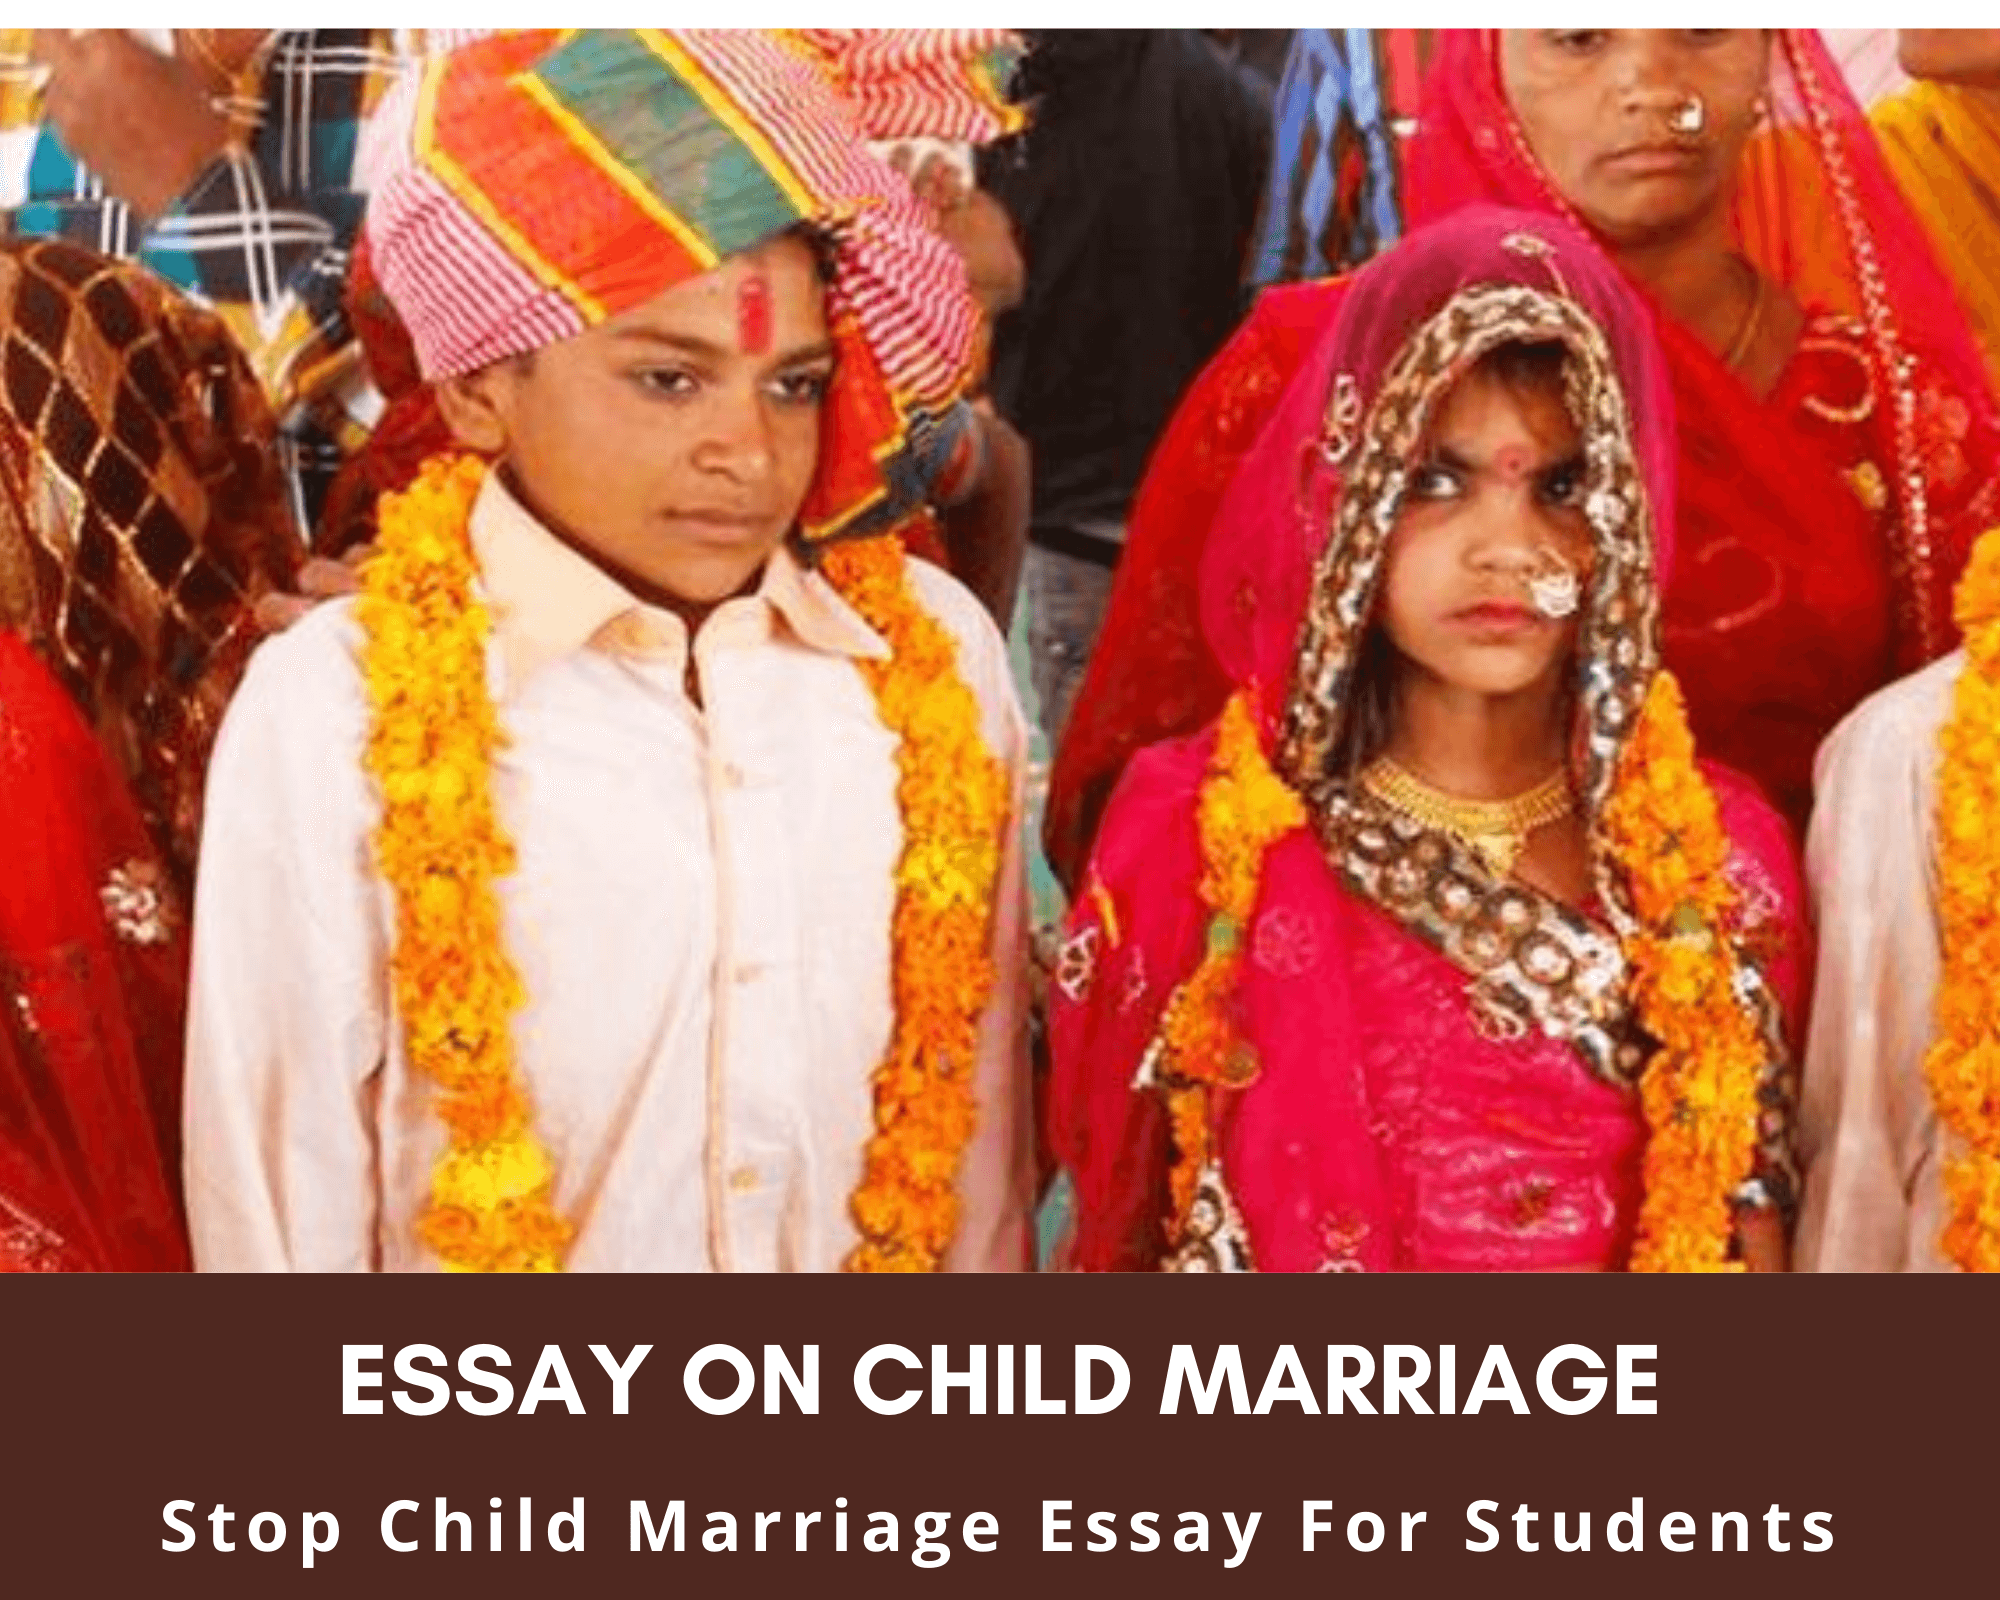 Child Marriage Essay For Students